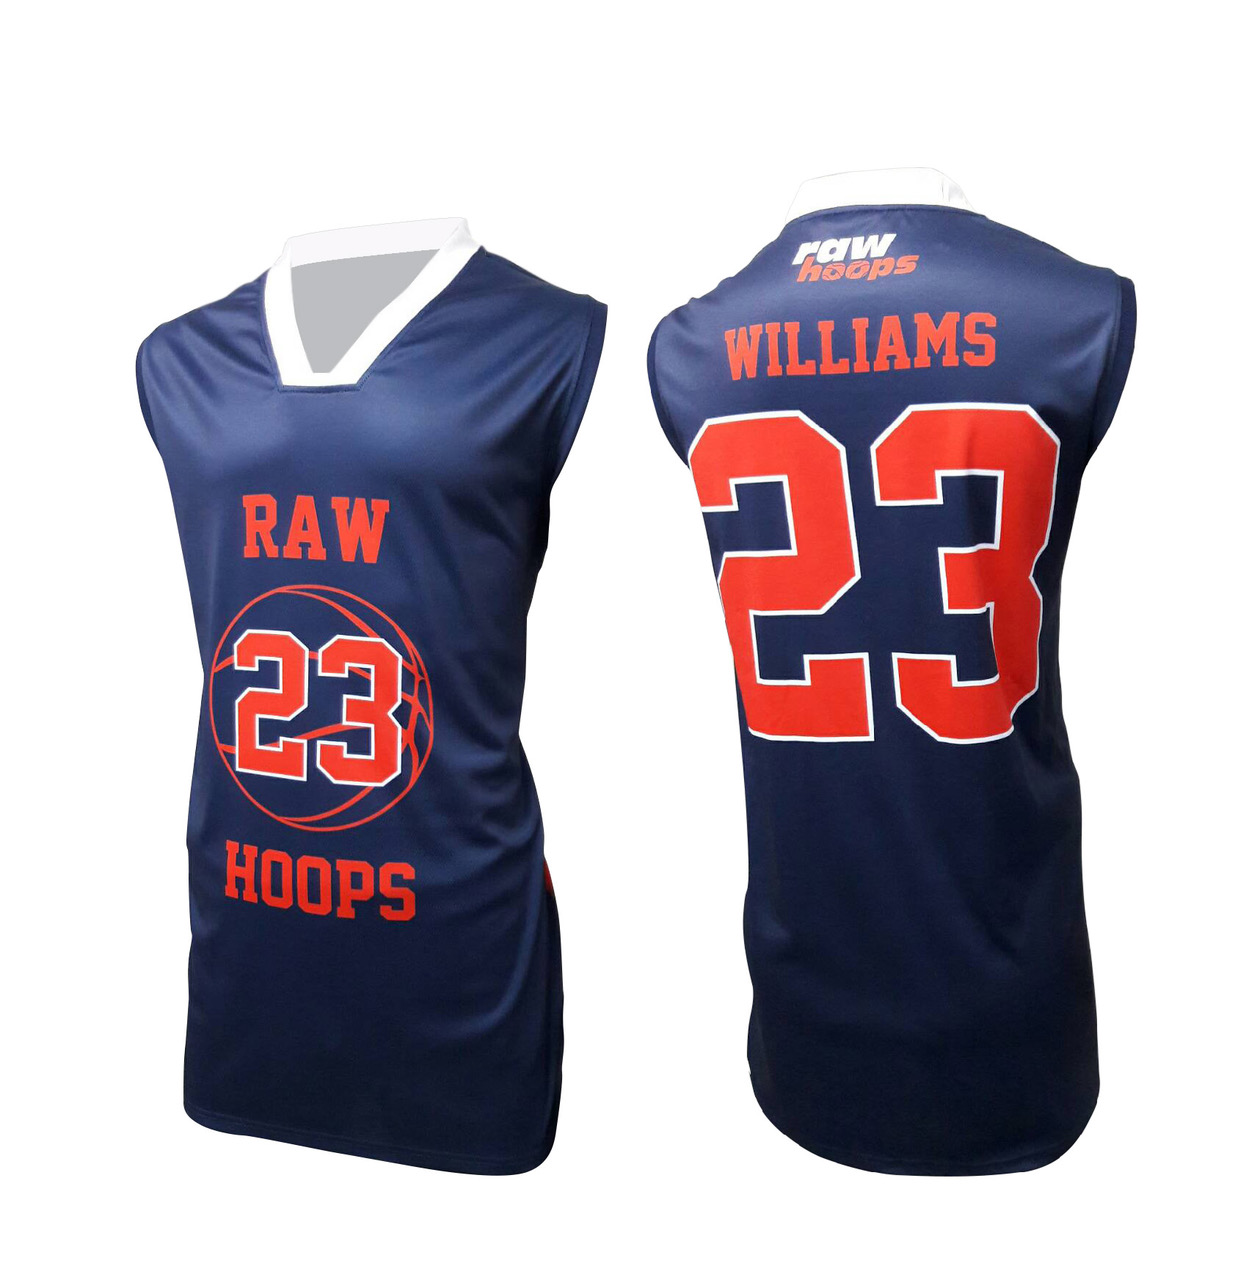 RAW HOOPS BASKETBALL JERSEY PROFILE TEAMWEAR TESTIMONIAL